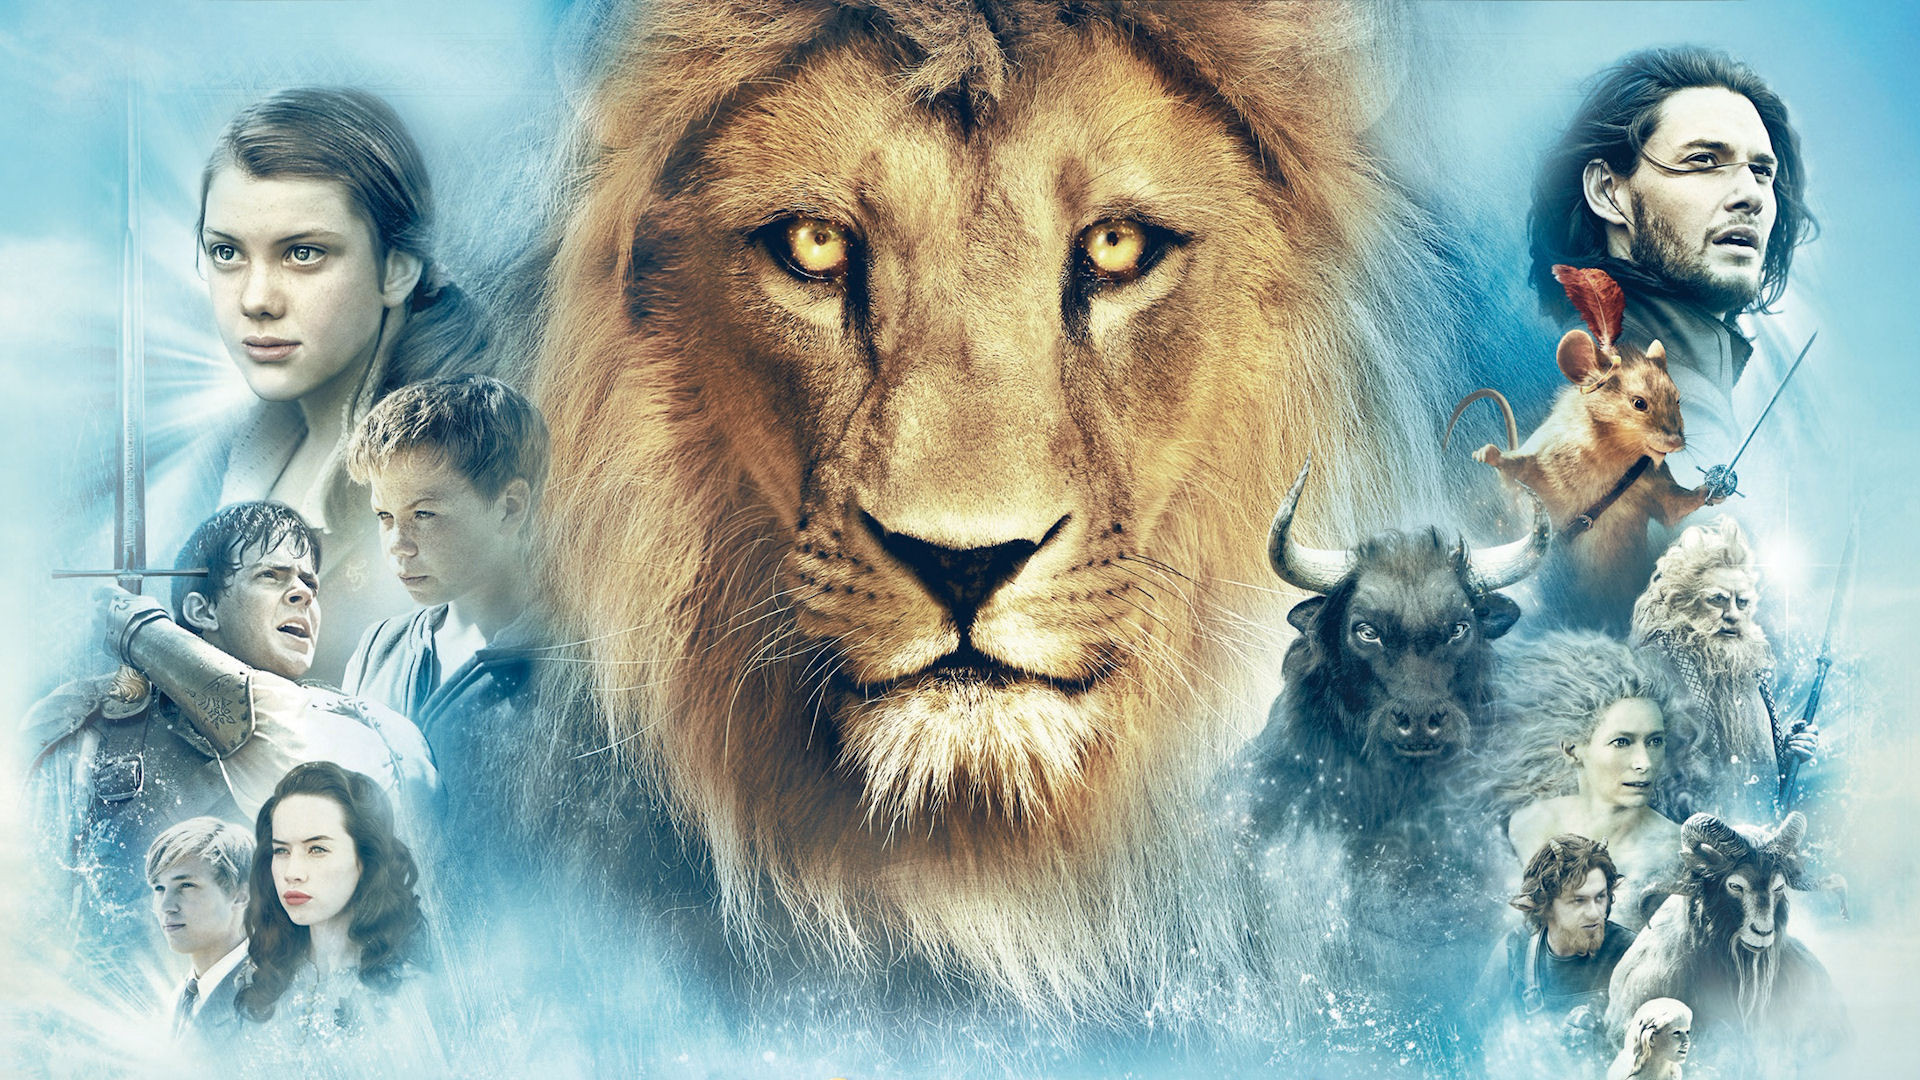 the silver chair movie 2015 rascal power fourth installment of narnia film series script has been finished